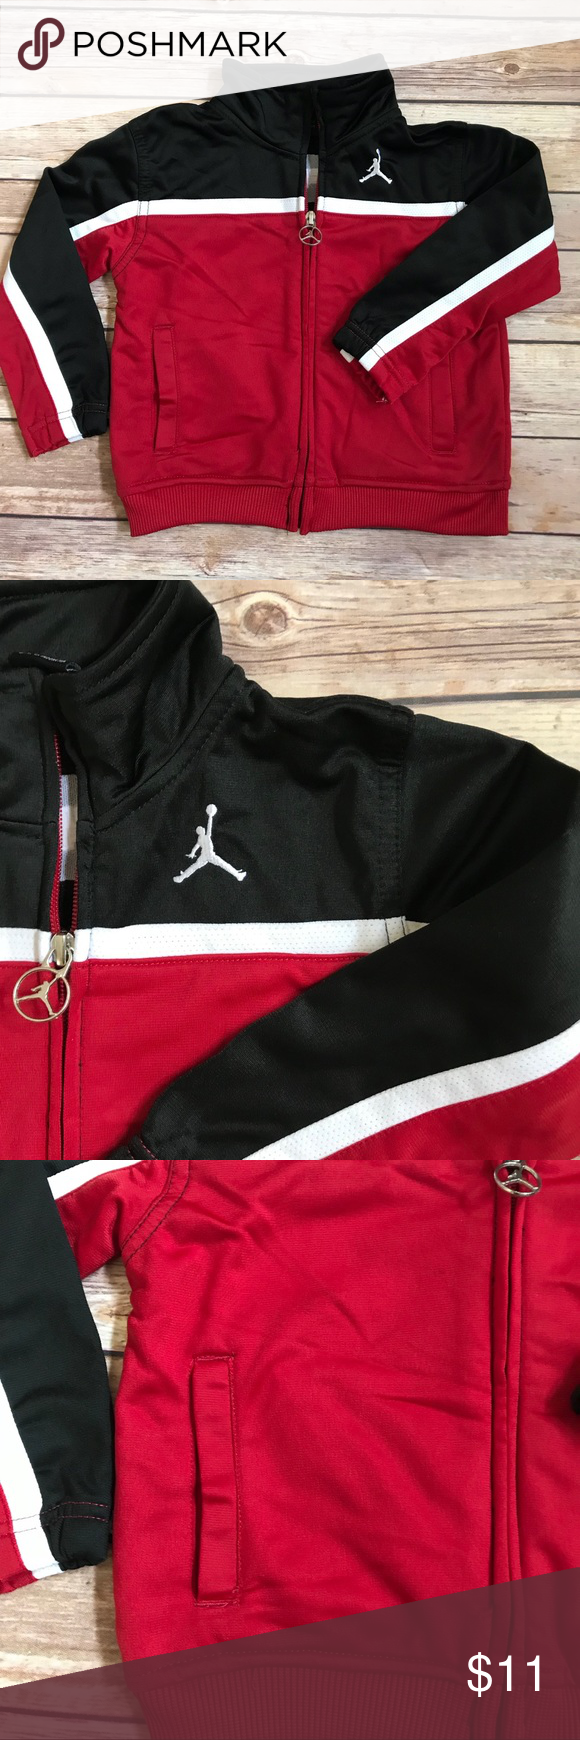 6f55b2a139ca1d Toddler Boys Michael Jordan Track Jacket 24 Month Jordan Zippered Track  Jacket Toddler Size 24 Months Gently Loved Jackets   Coats